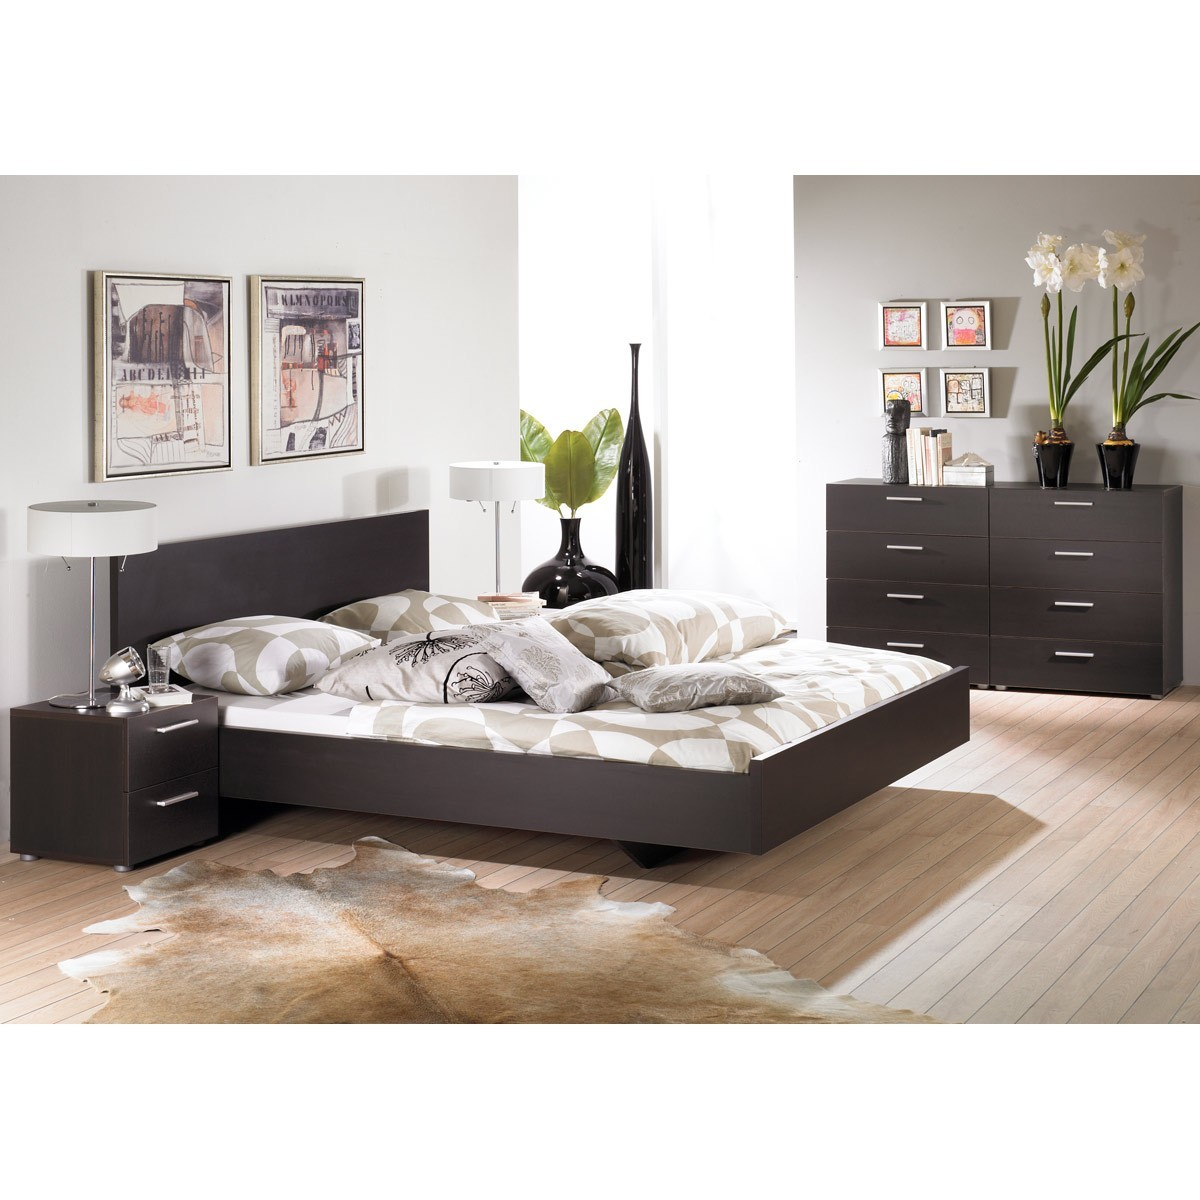 bett paradise 160 x 200 cm in coffee. Black Bedroom Furniture Sets. Home Design Ideas